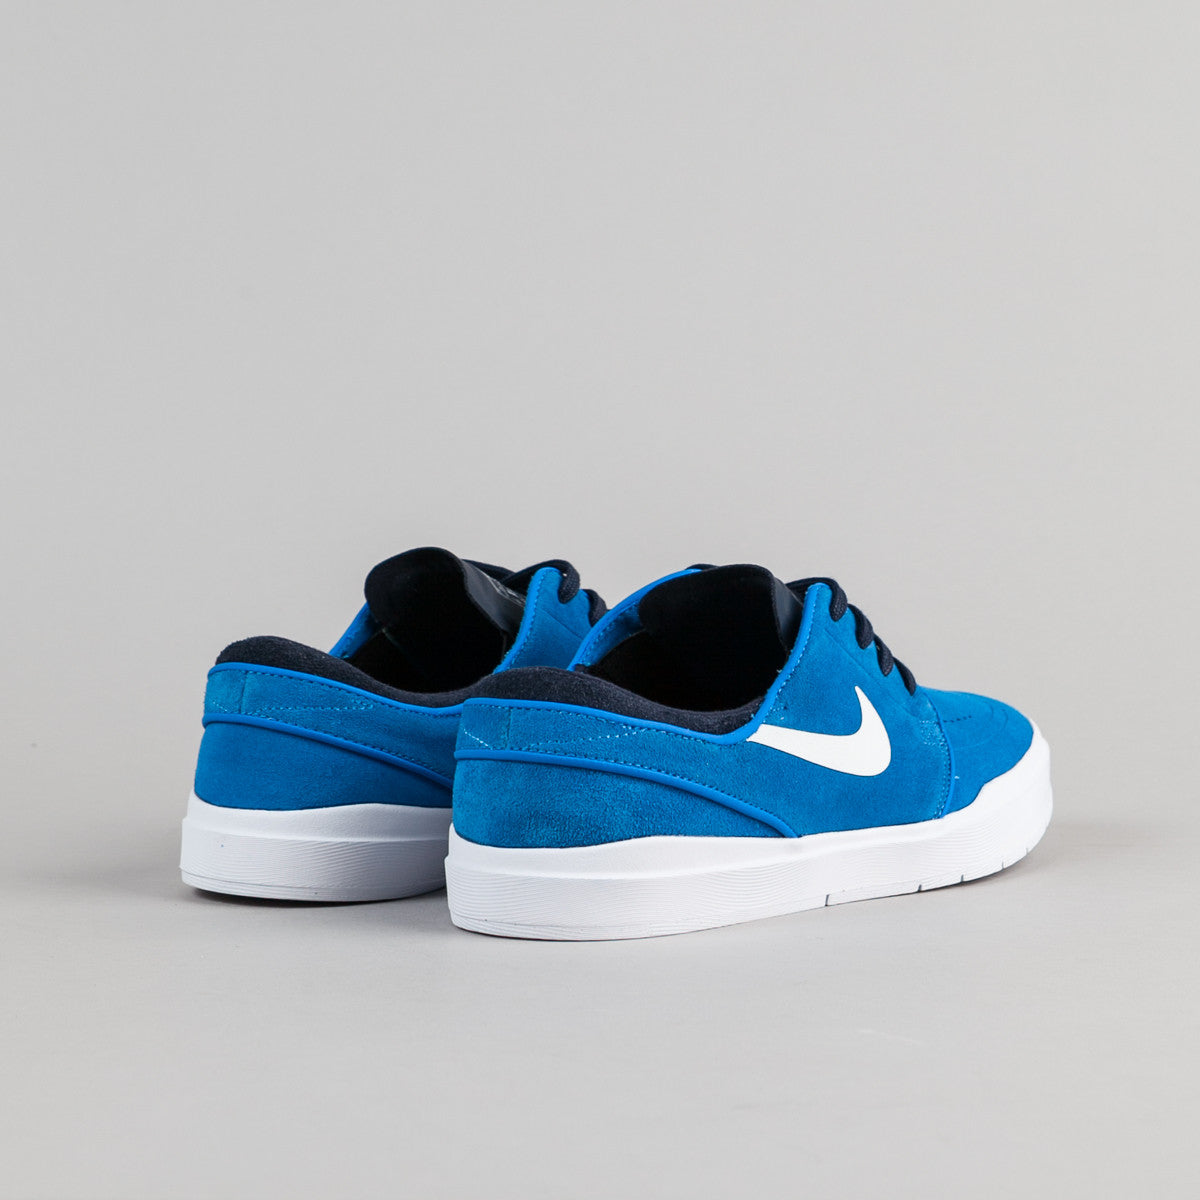 Nike SB Stefan Janoski Hyperfeel Shoes - Photo Blue / White - Obsidian